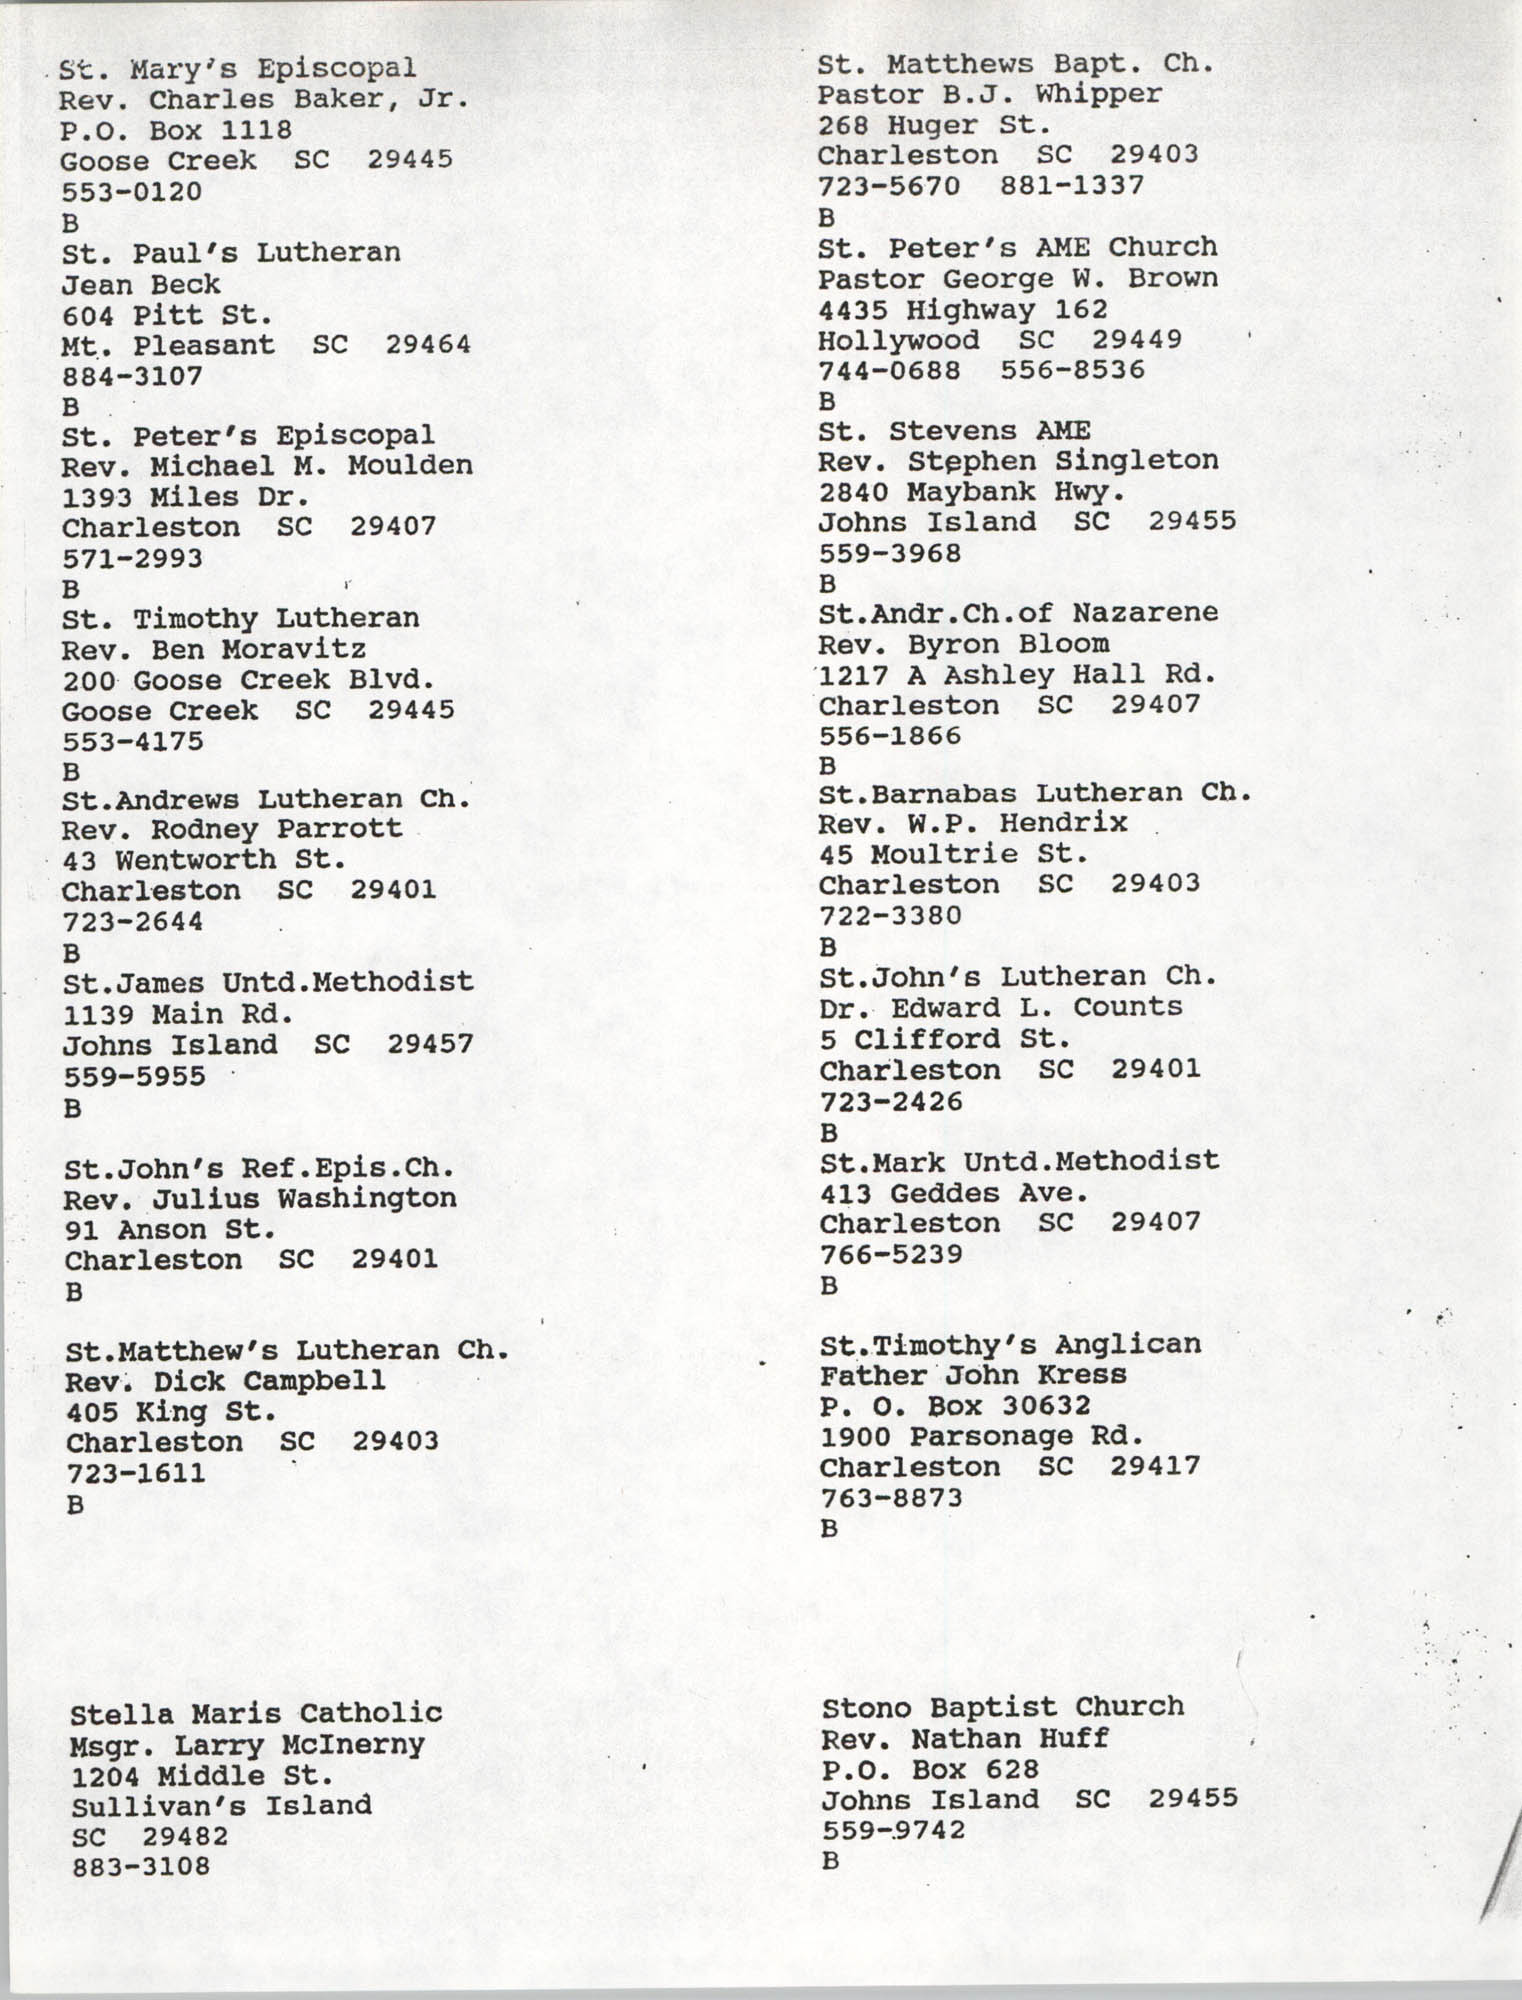 Church Contact List, Charleston Chapter of the NAACP, Page 13